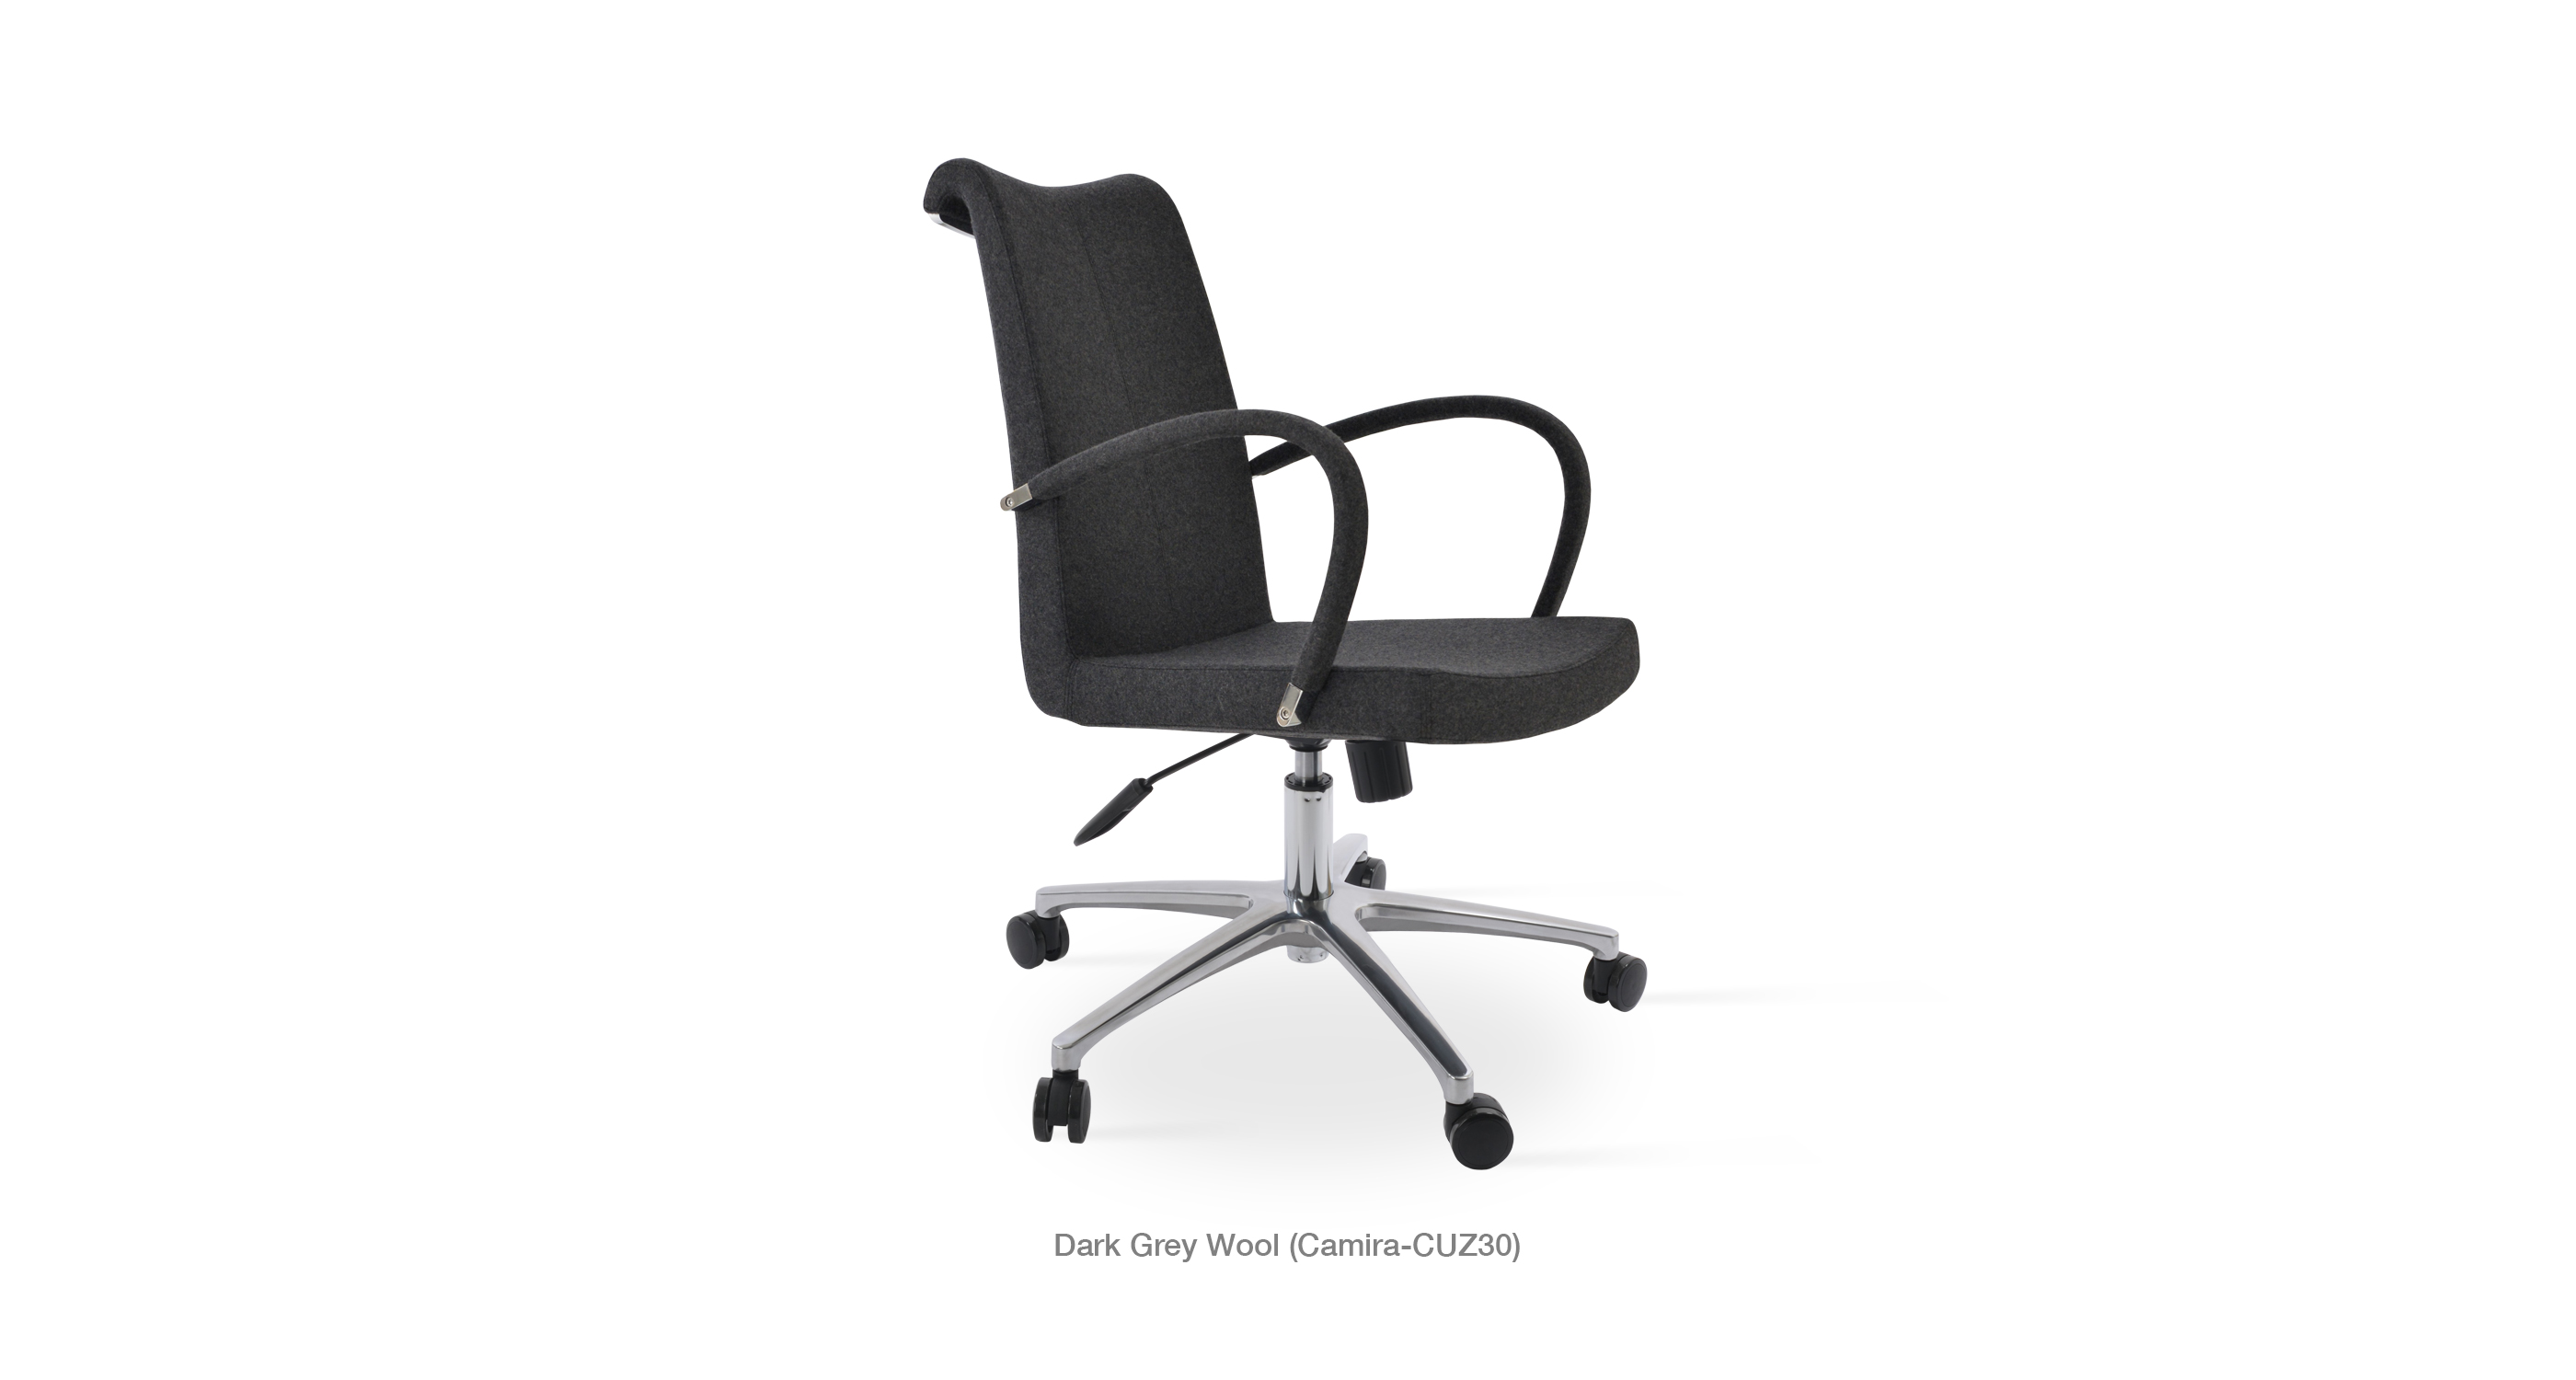 tulip arm office - dark grey wool